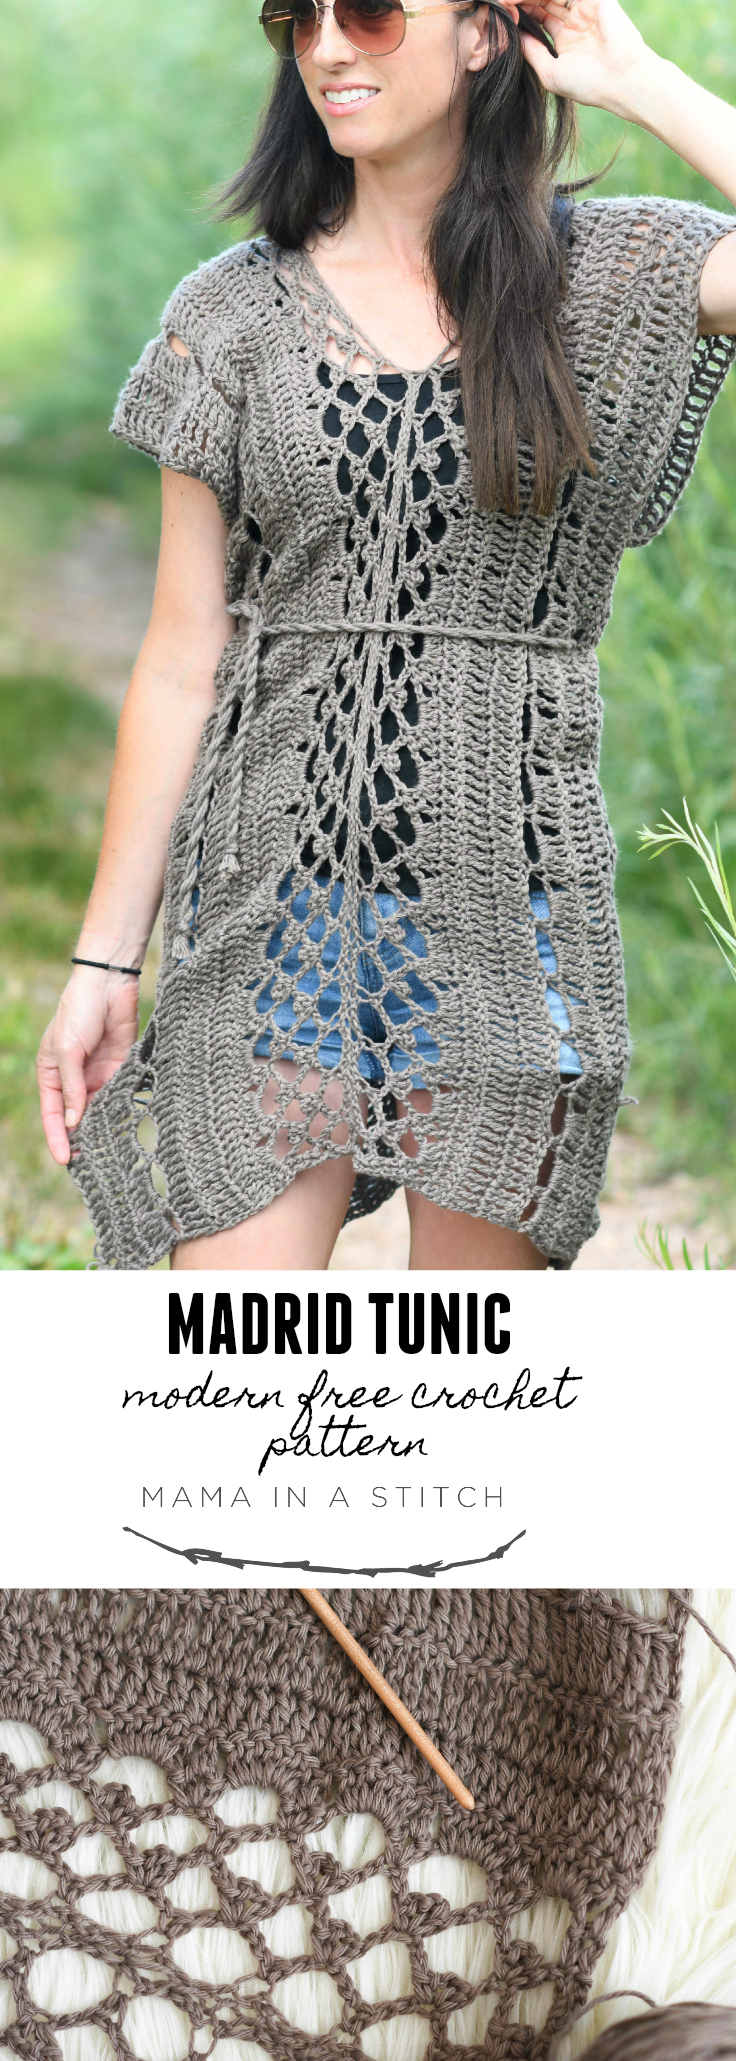 Madrid Tunic Free Crochet Pattern